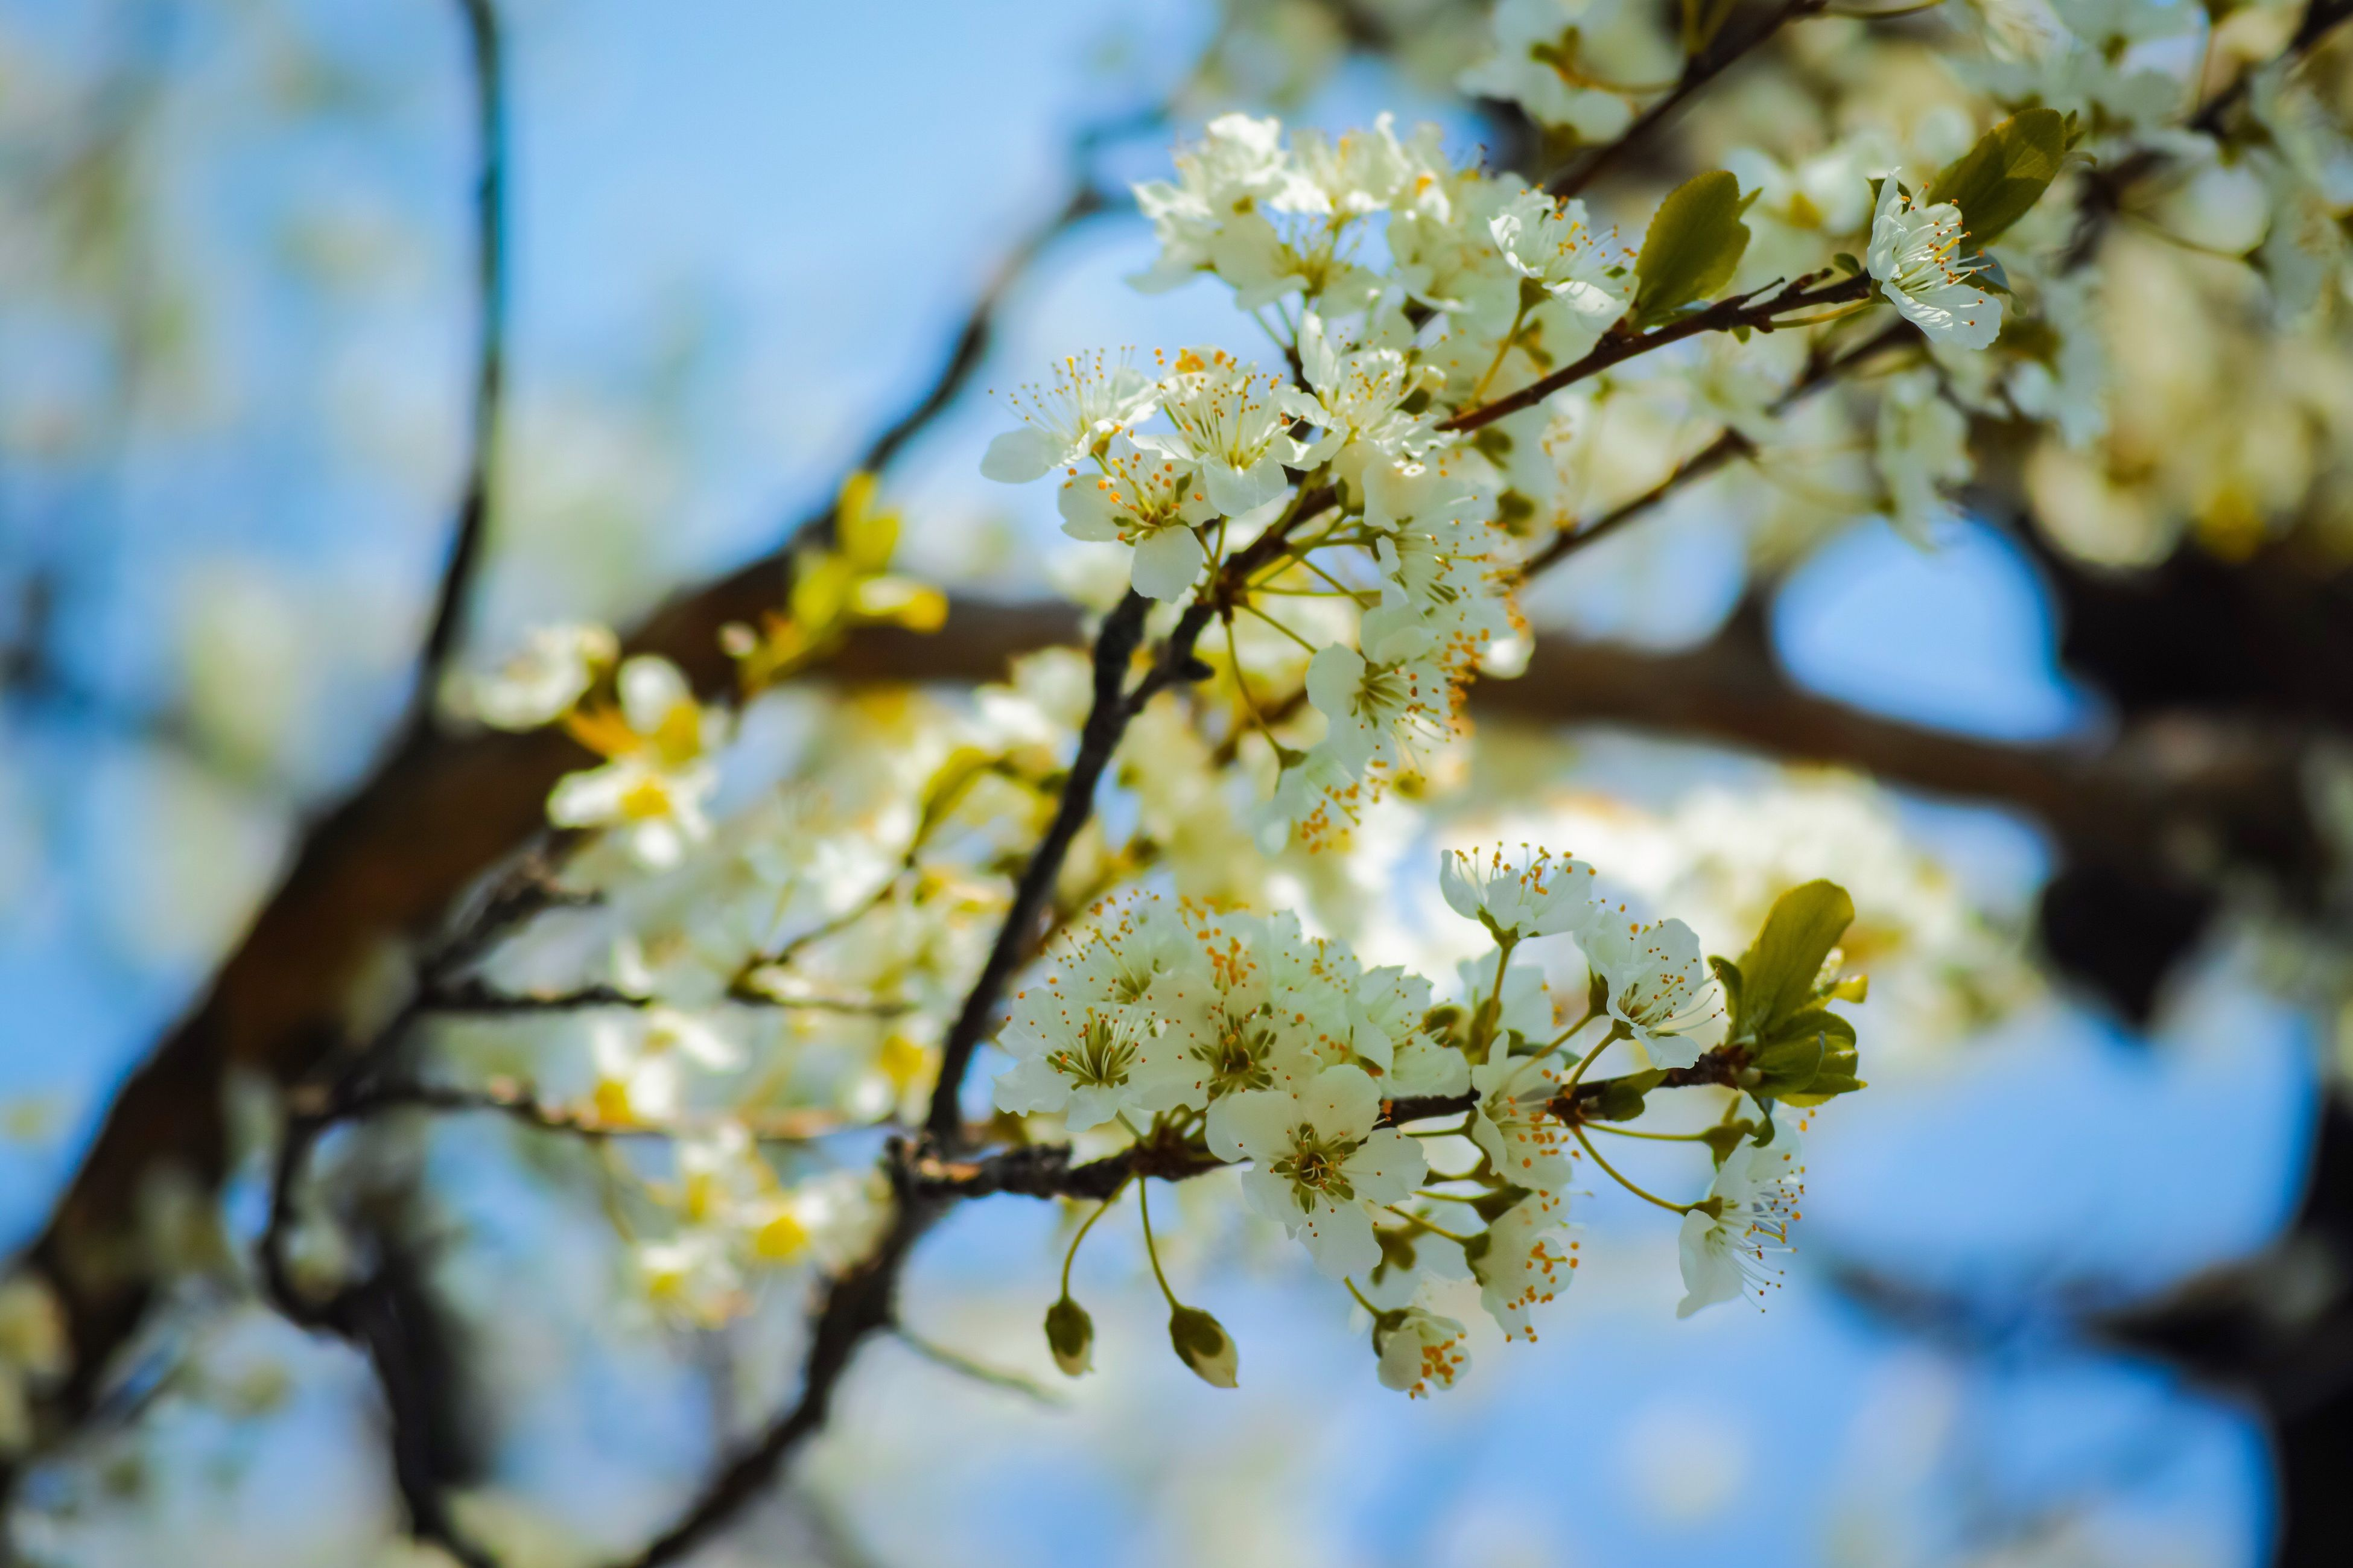 nature, beauty in nature, growth, flower, fragility, branch, freshness, low angle view, close-up, no people, tree, springtime, blossom, outdoors, sunlight, day, sky